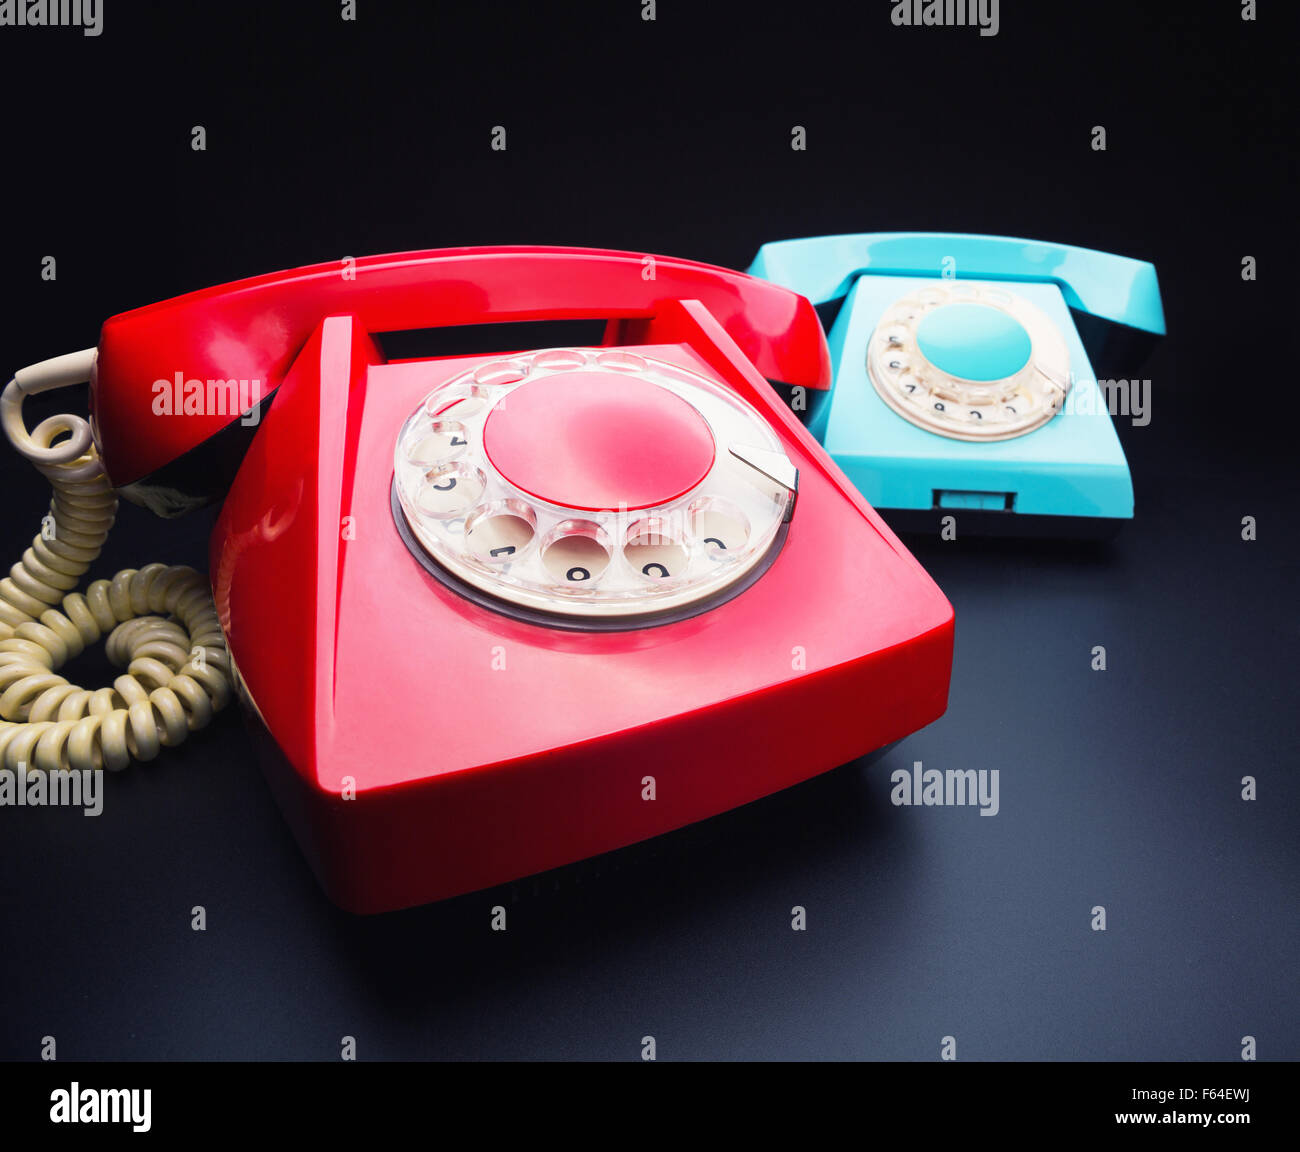 Vintage red and blue telephones - Stock Image